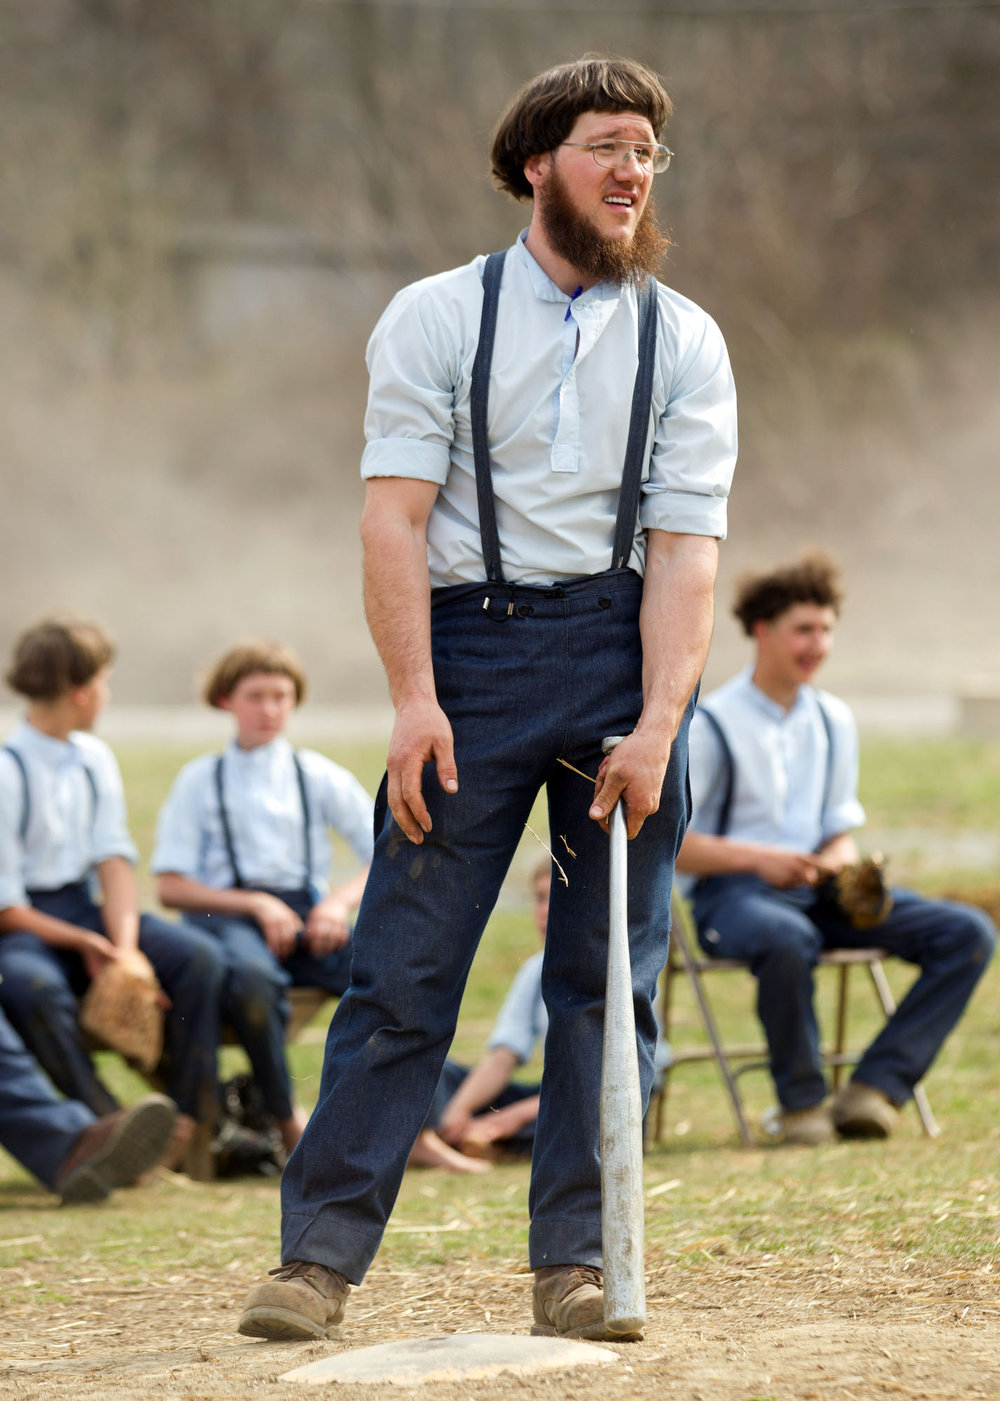 Description of . Freeman Burkholder waits for his at bat during a game of baseball at the farewell picnic in Bergholz, Ohio on Tuesday, April 9, 2013.  The picnic was for Burkholder and other Amish people leaving for prison this week for their part in the hair and beard cutting scandal against other Amish members.  (AP Photo/Scott R. Galvin)